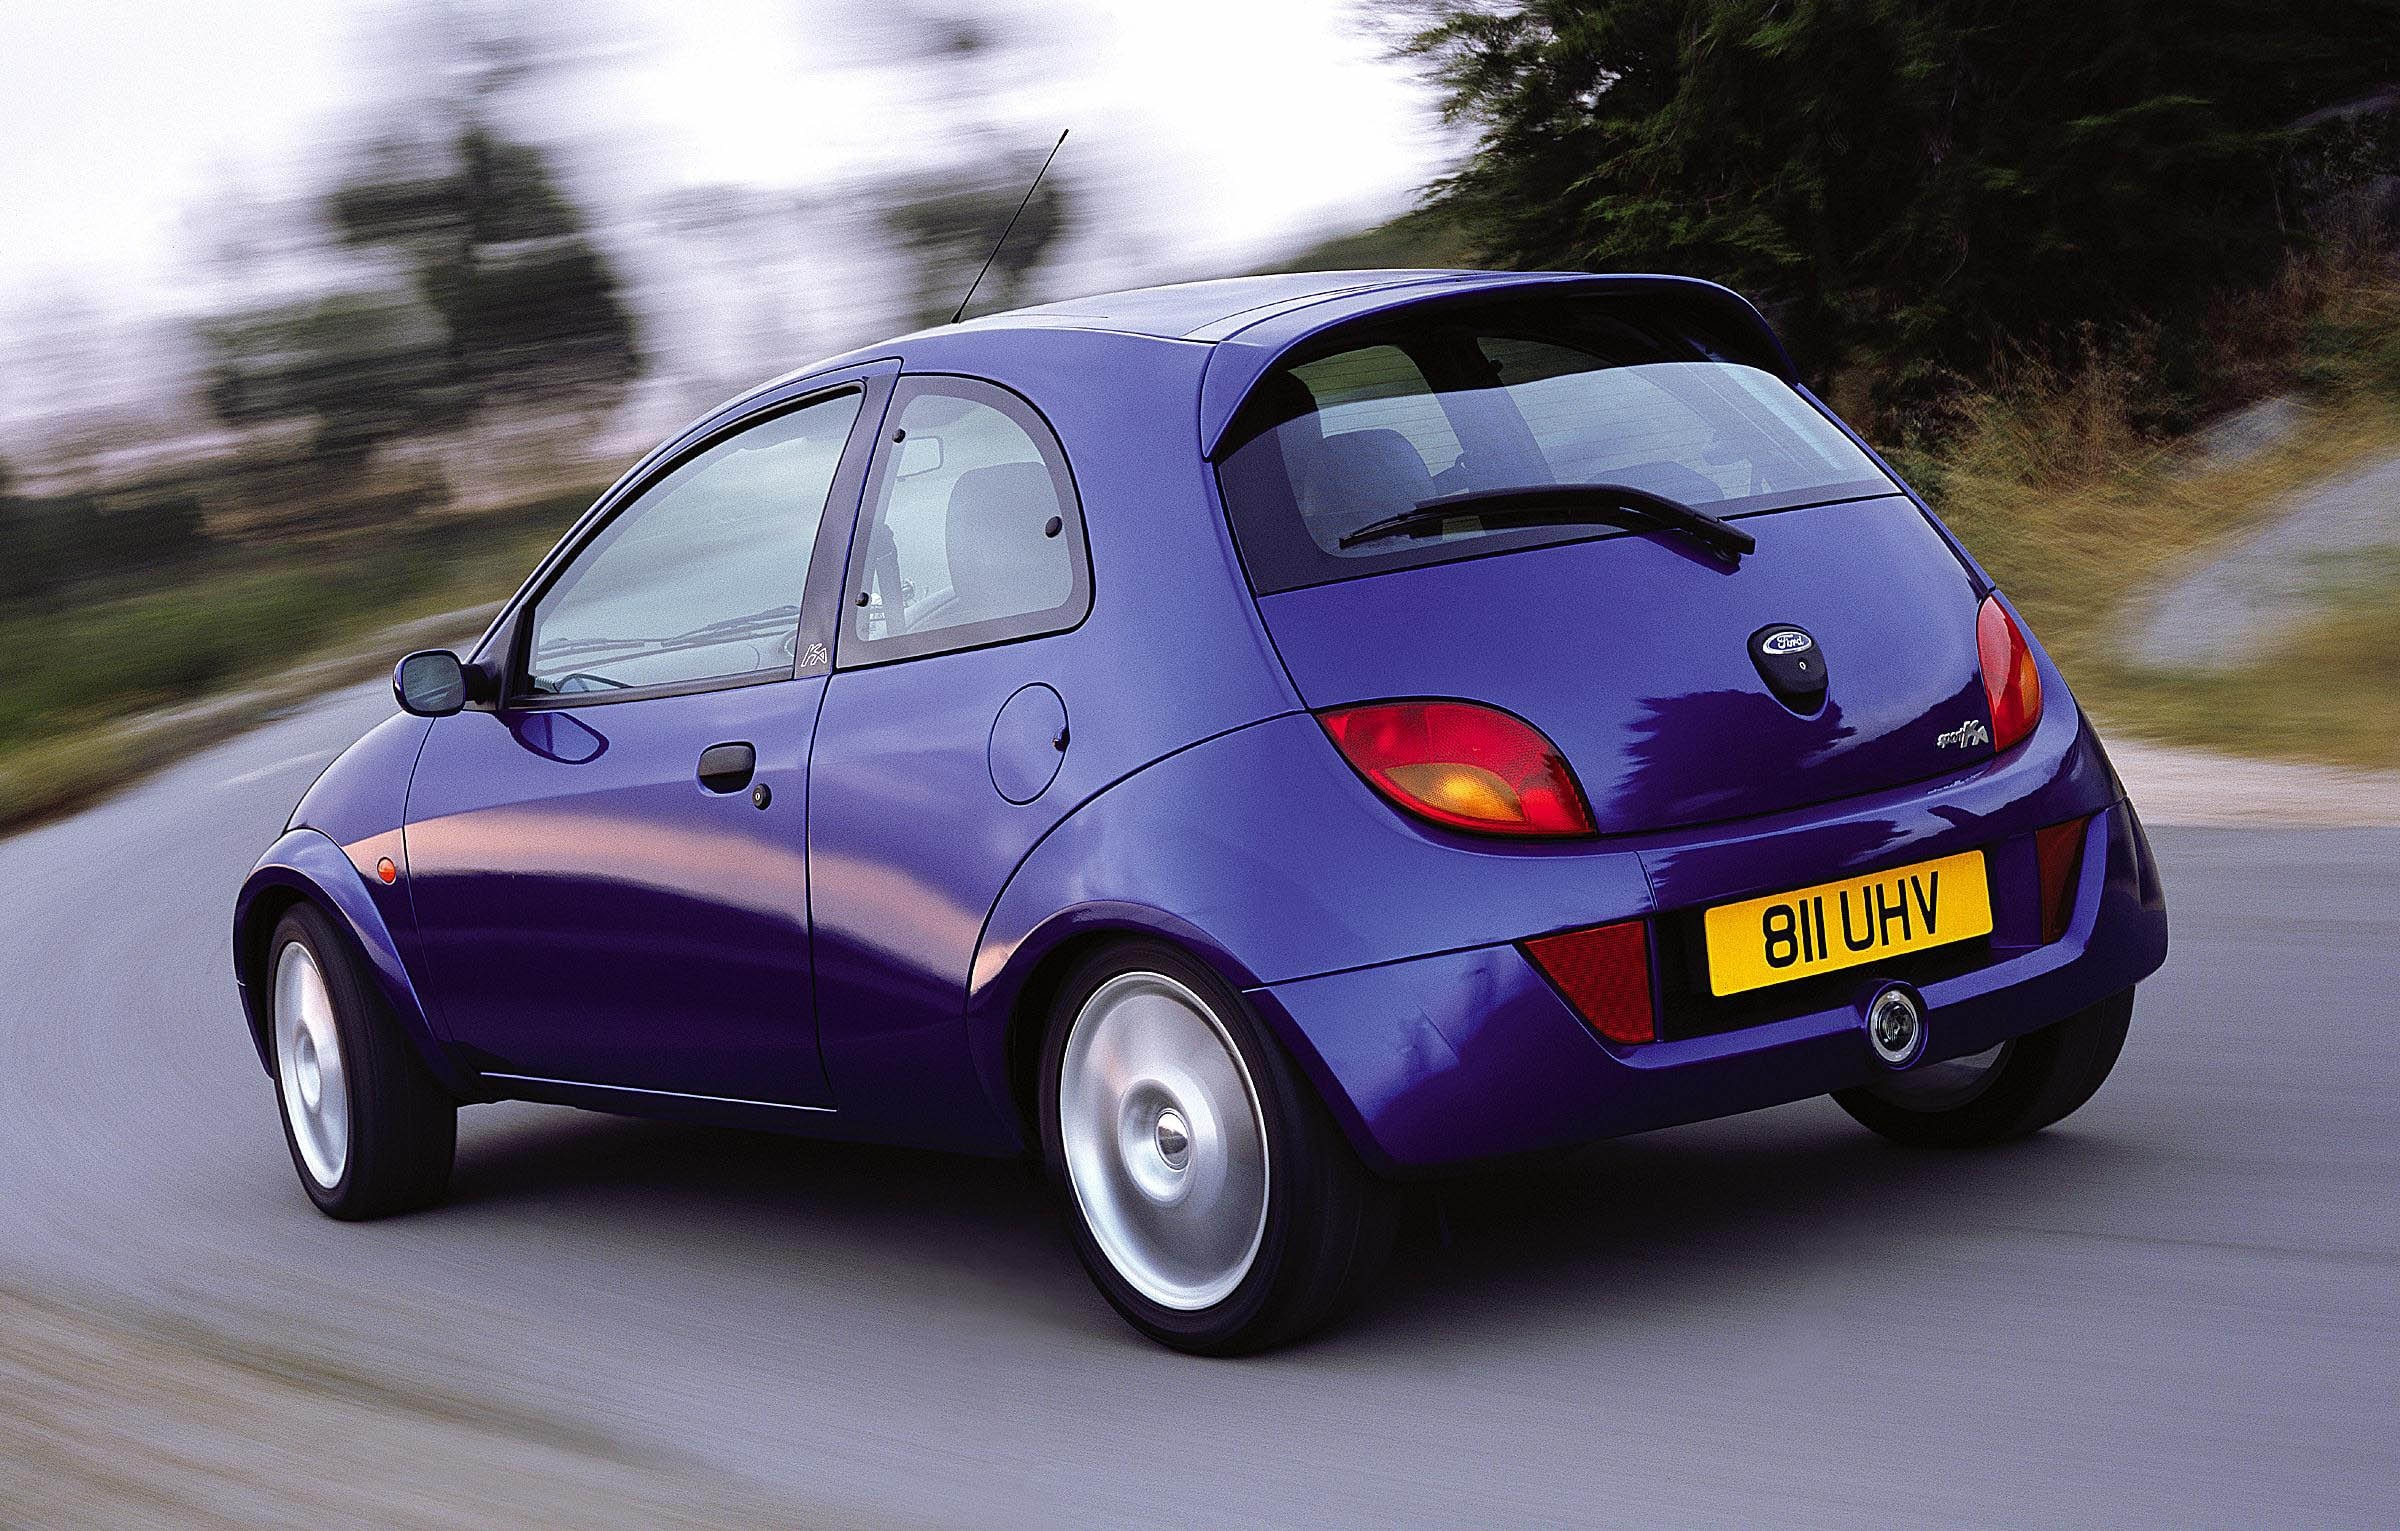 Ford SportKa, Ford, Ford Ka, Ka, SportKa, StreetKa, Kylie Minogue, Kylie, car, hot hatch, fun car, go kart, motoring, automotive, cheap car, bargain car, motoring, automotive, classic car, retro car, car sales, ebay, ebay motors, autotrader